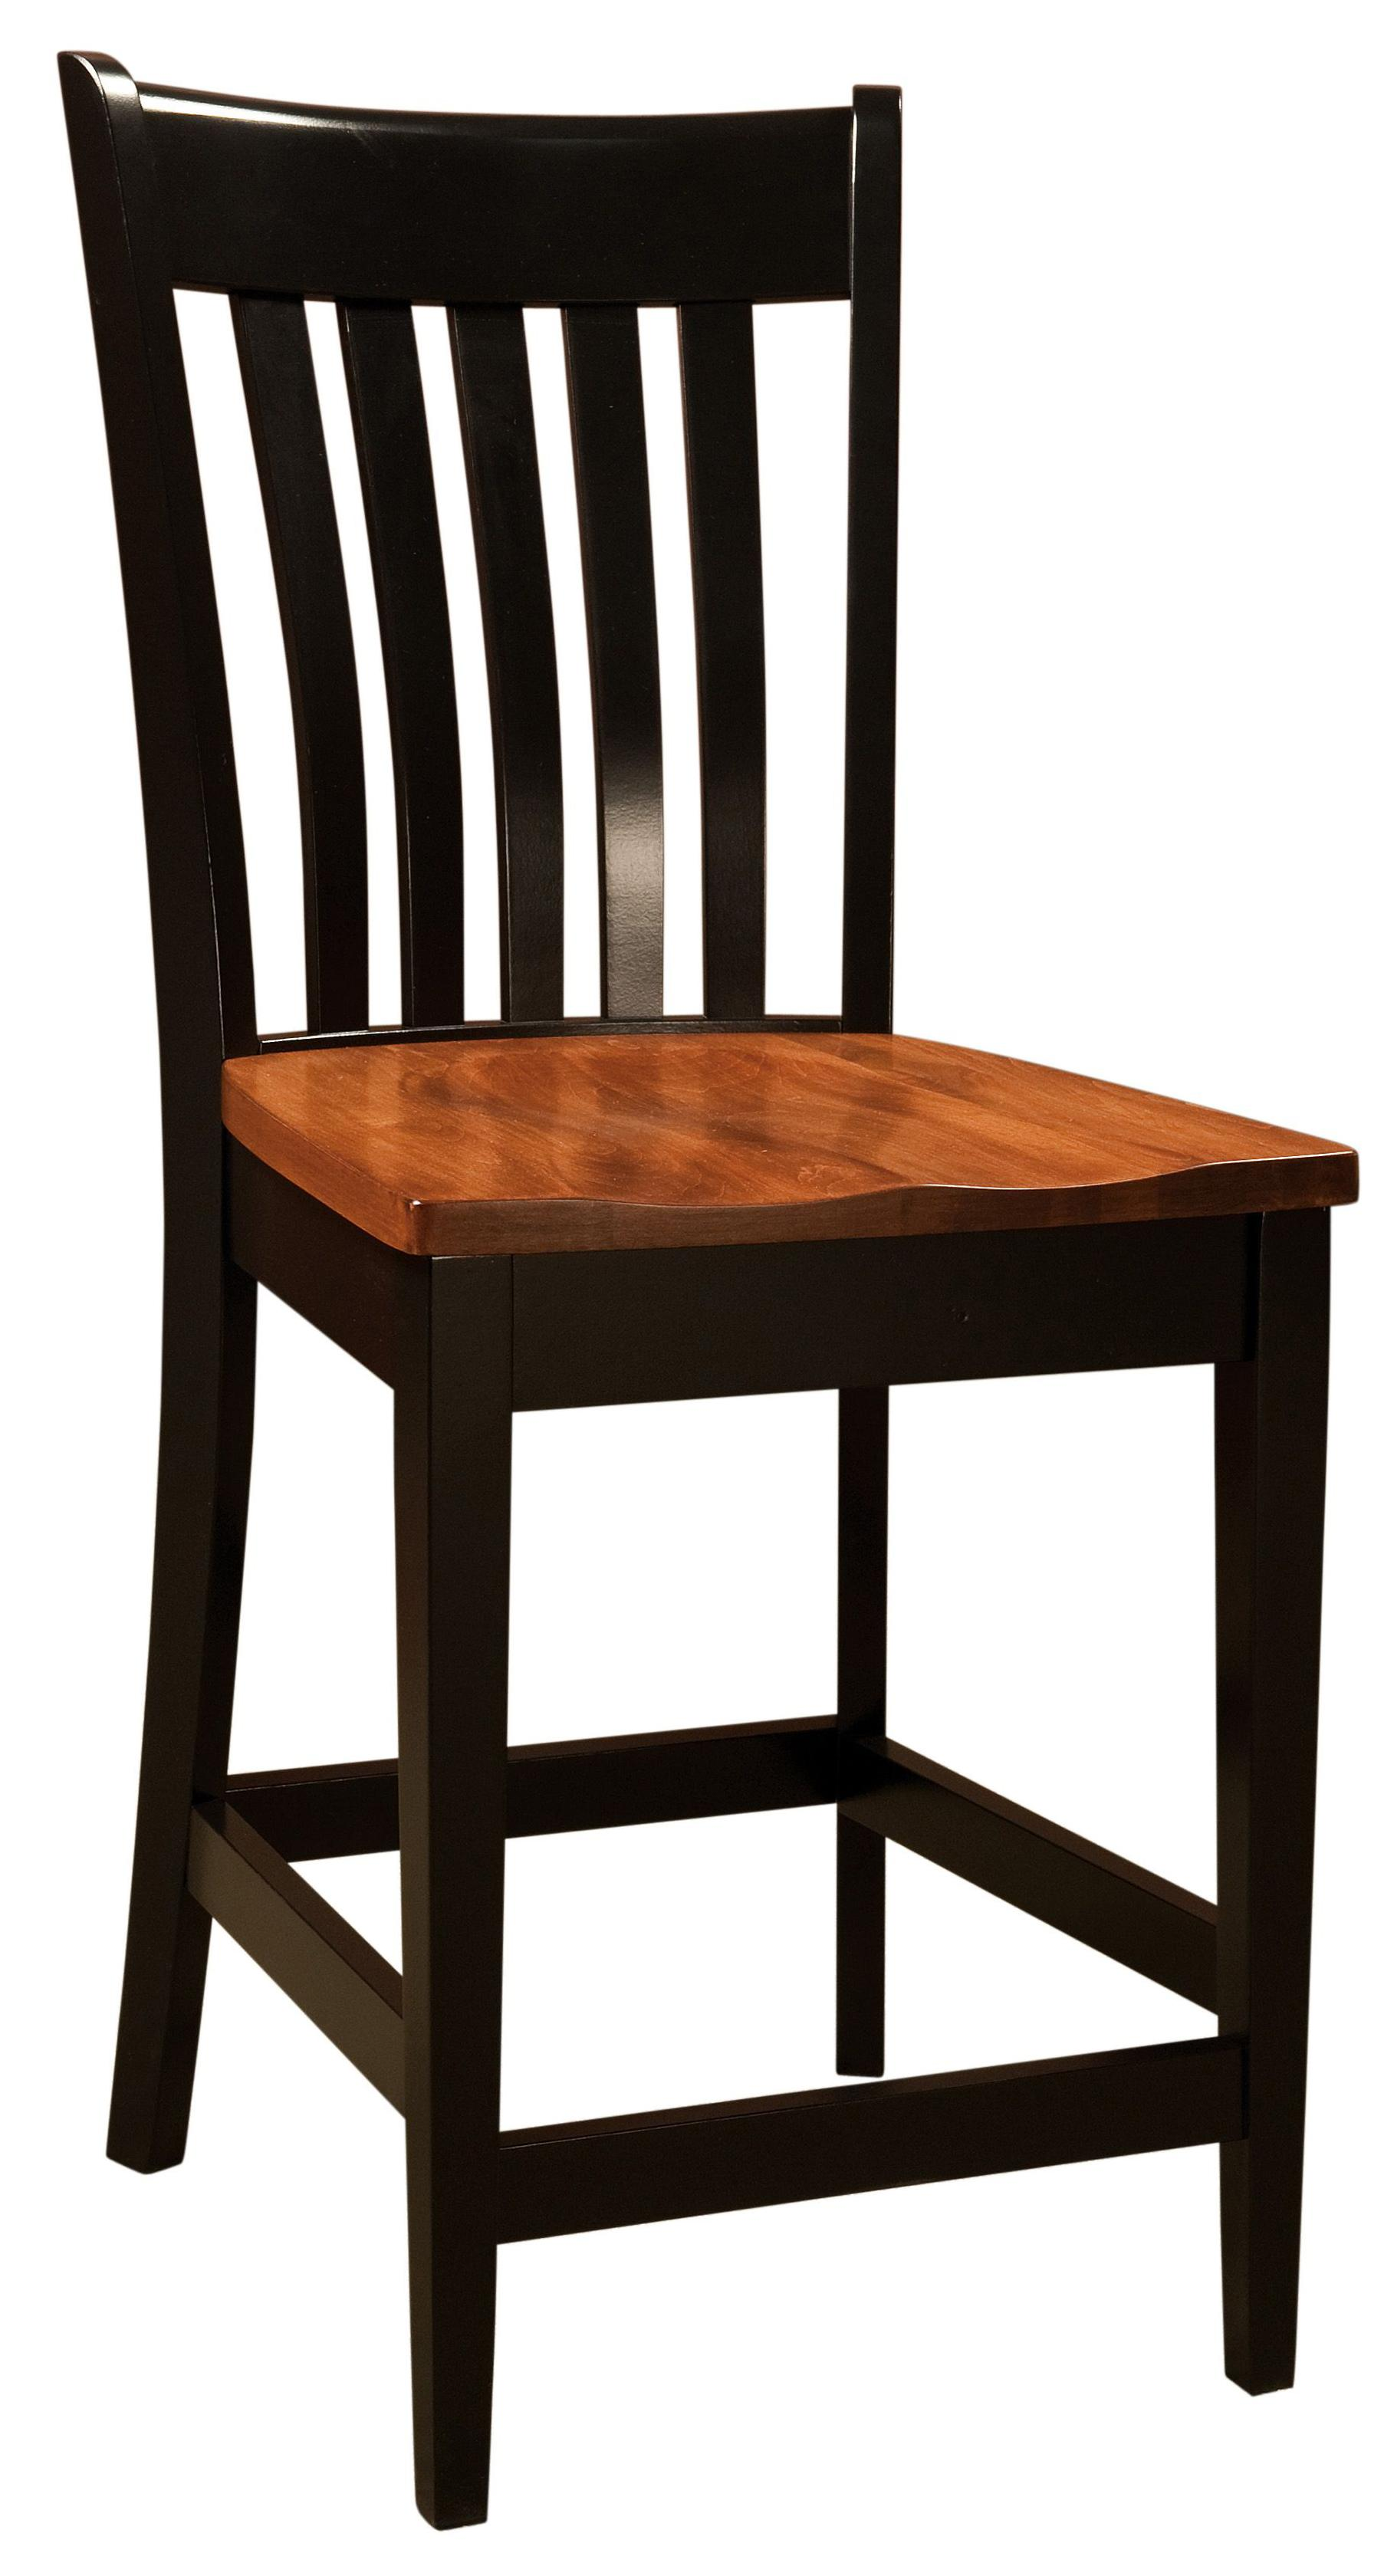 Bar Chairs Seabury Bar Chair by Amish Impressions by Fusion Designs at Mueller Furniture